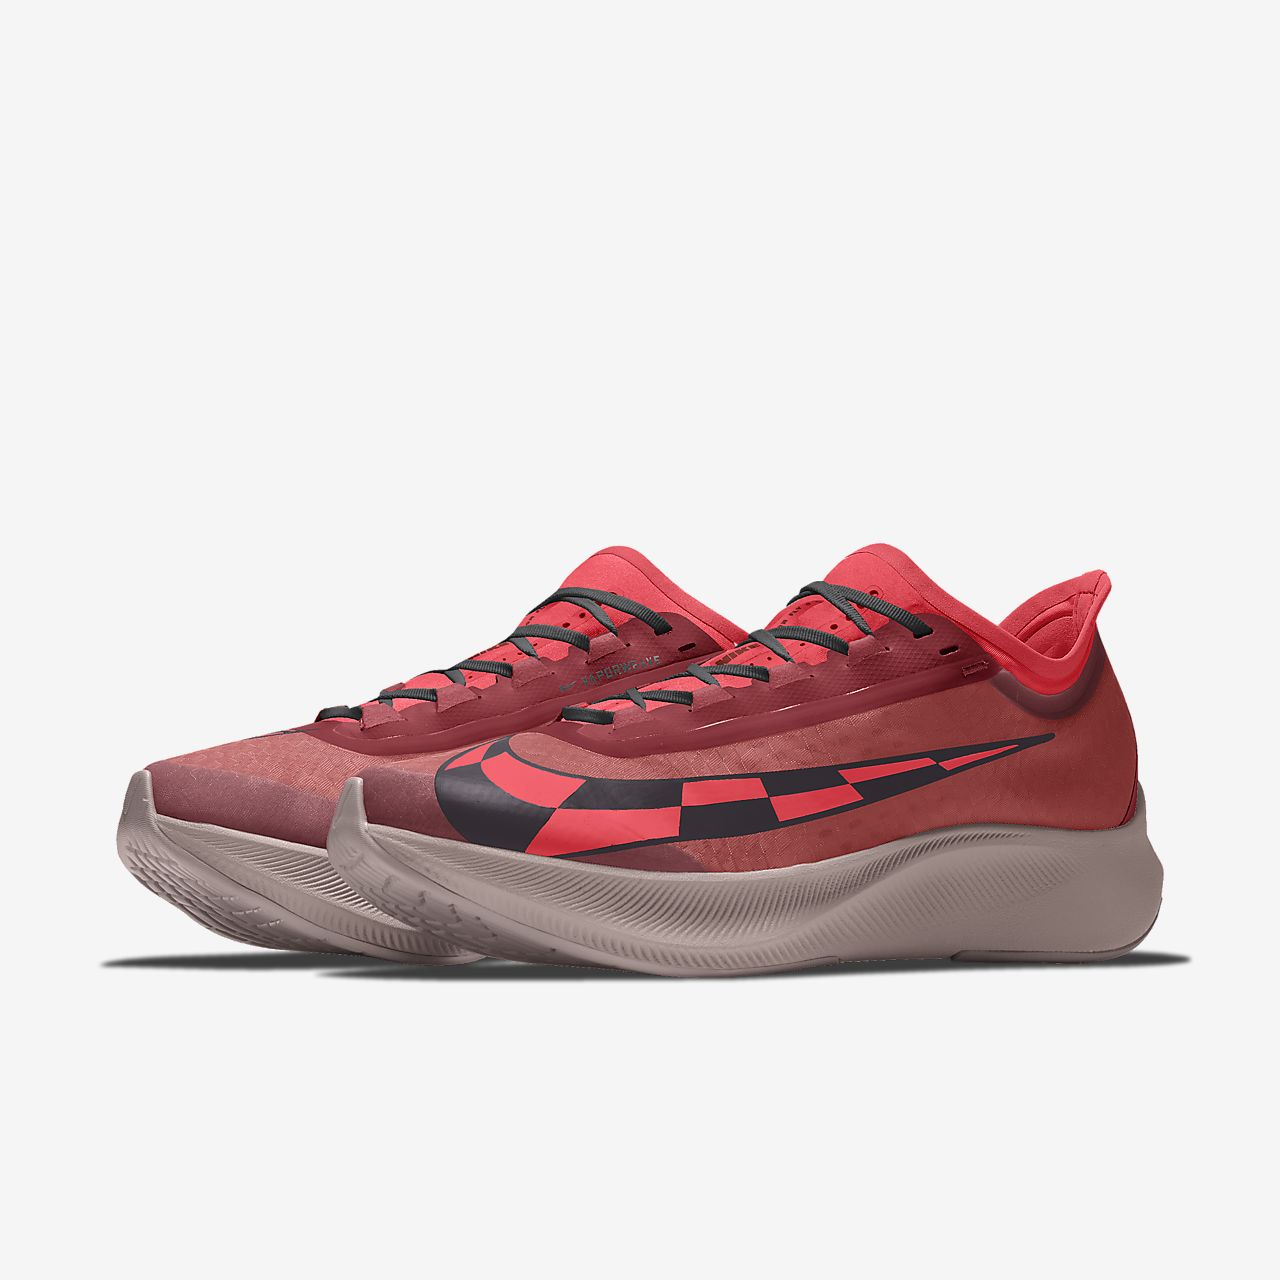 Scarpa da running personalizzabile Nike Zoom Fly 3 Premium By You